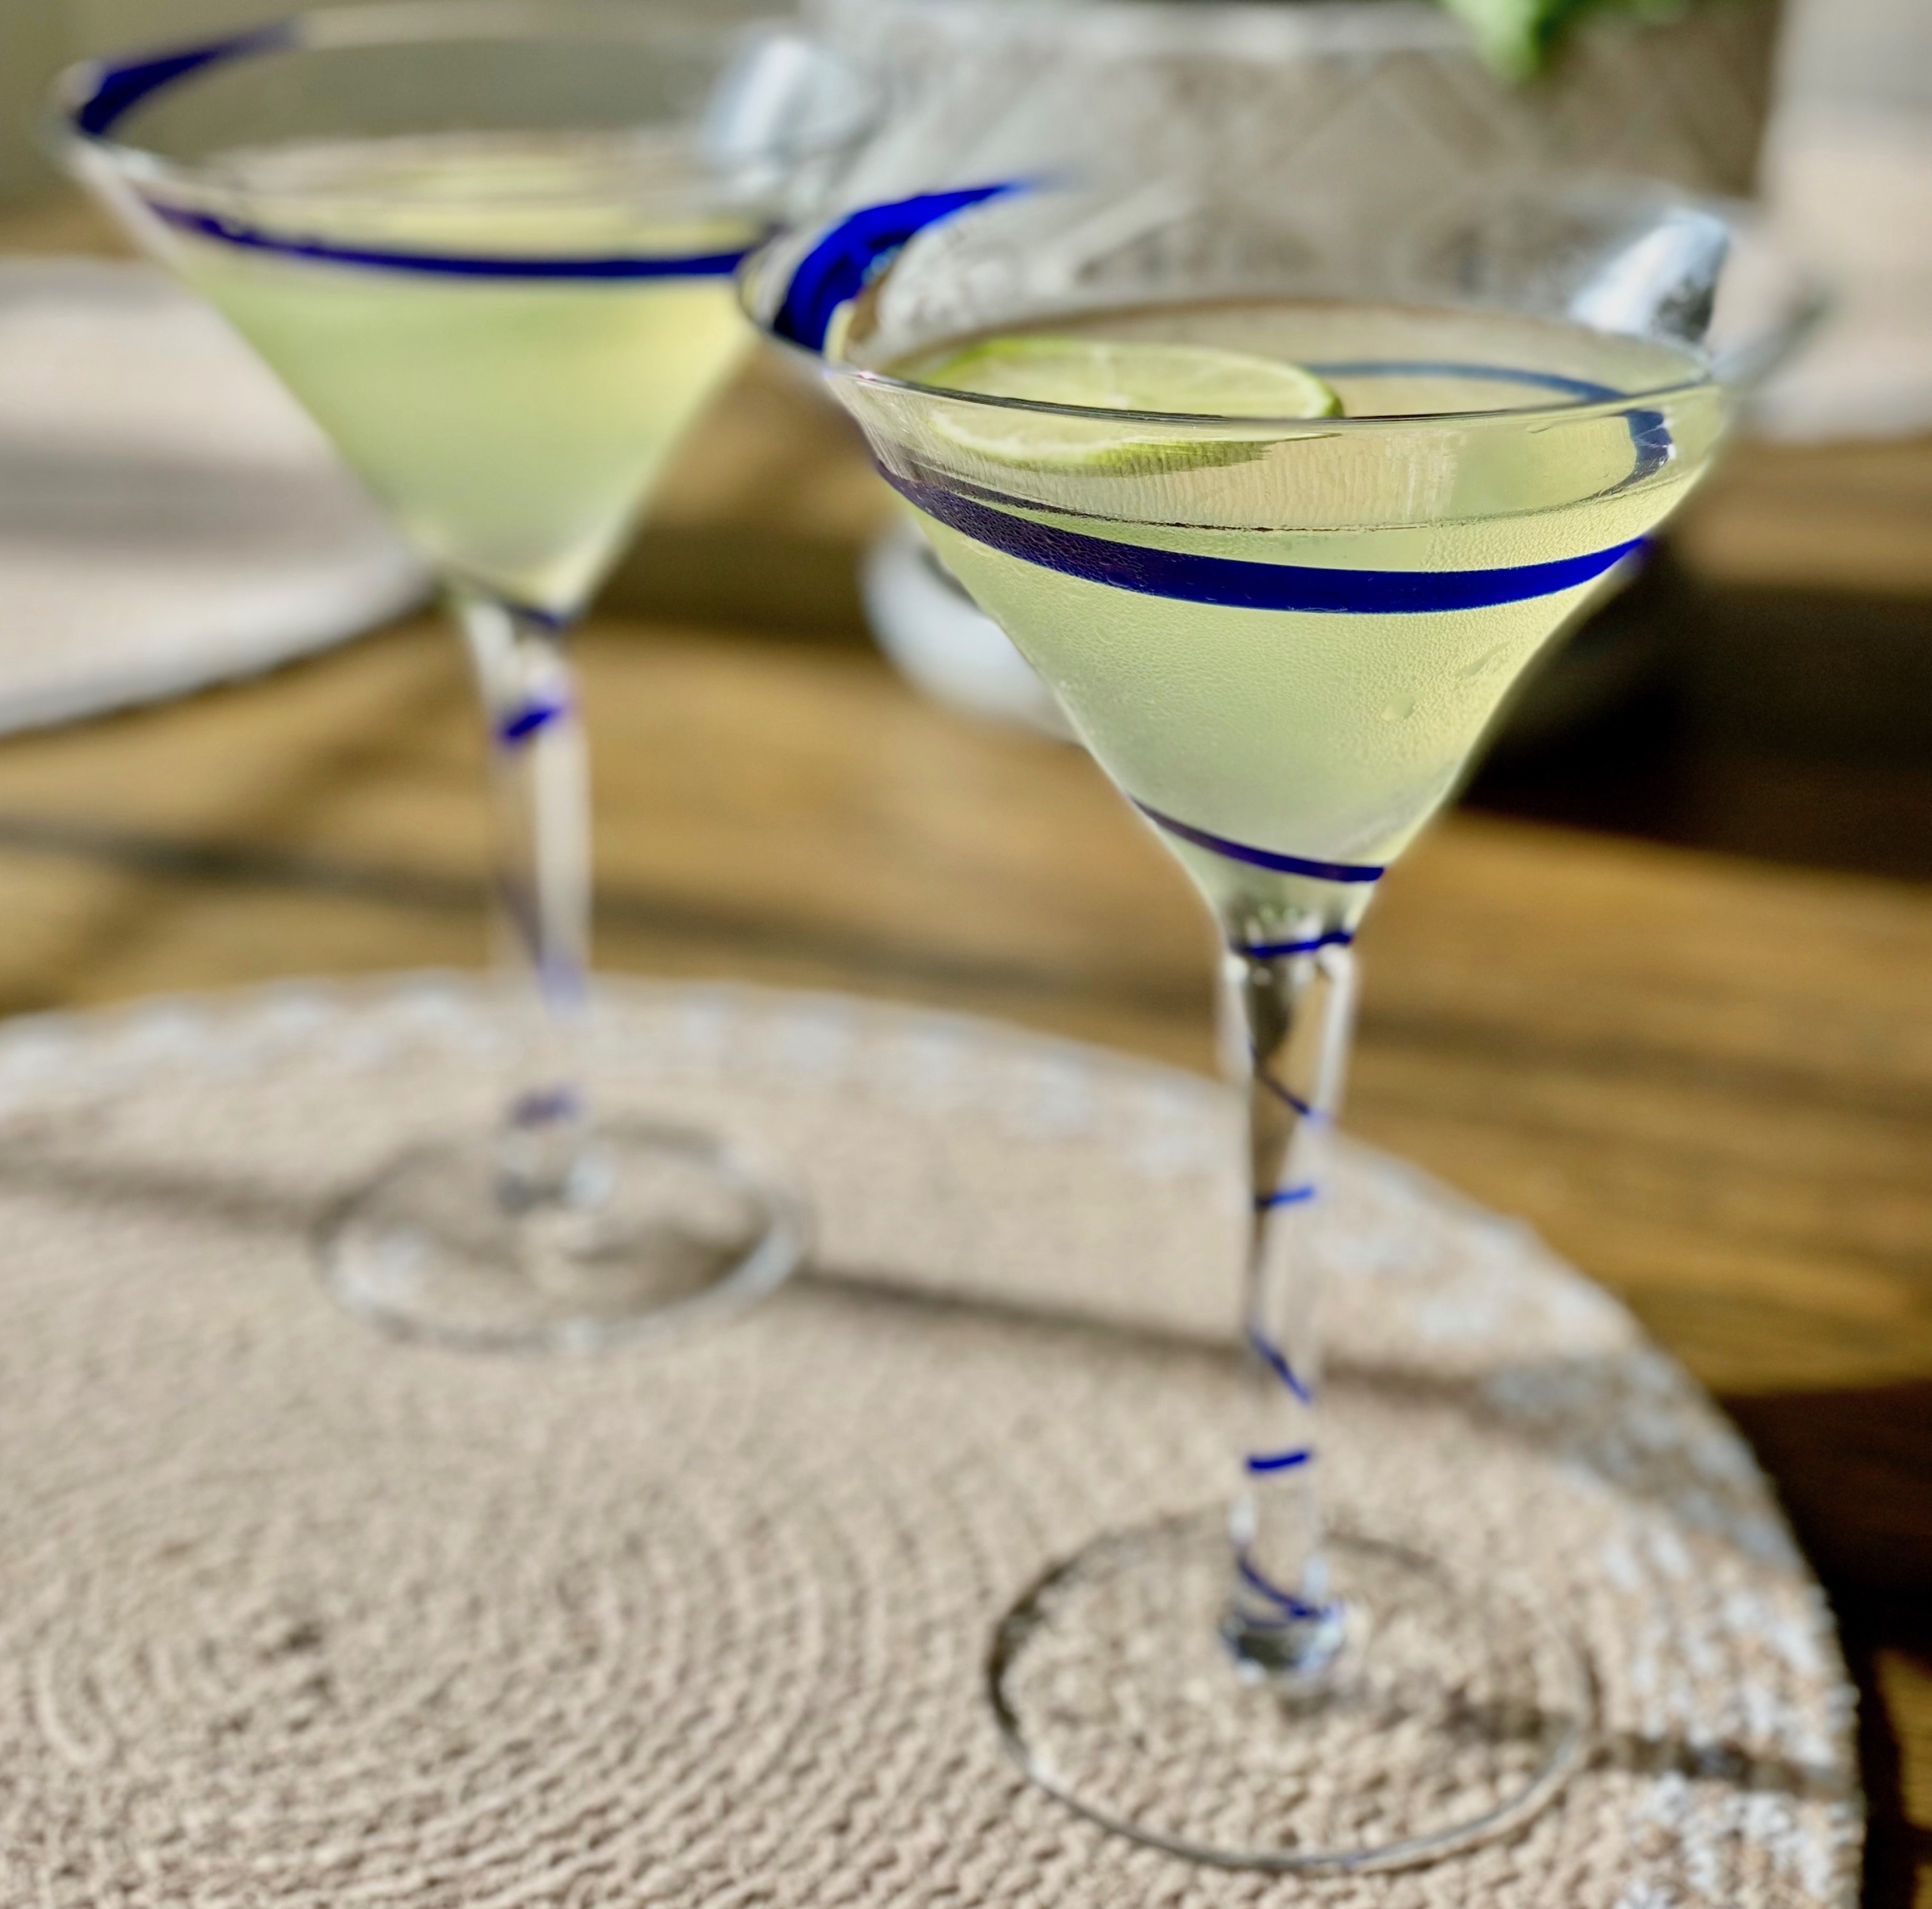 Basil Gimlet Cocktails in Martini Glass